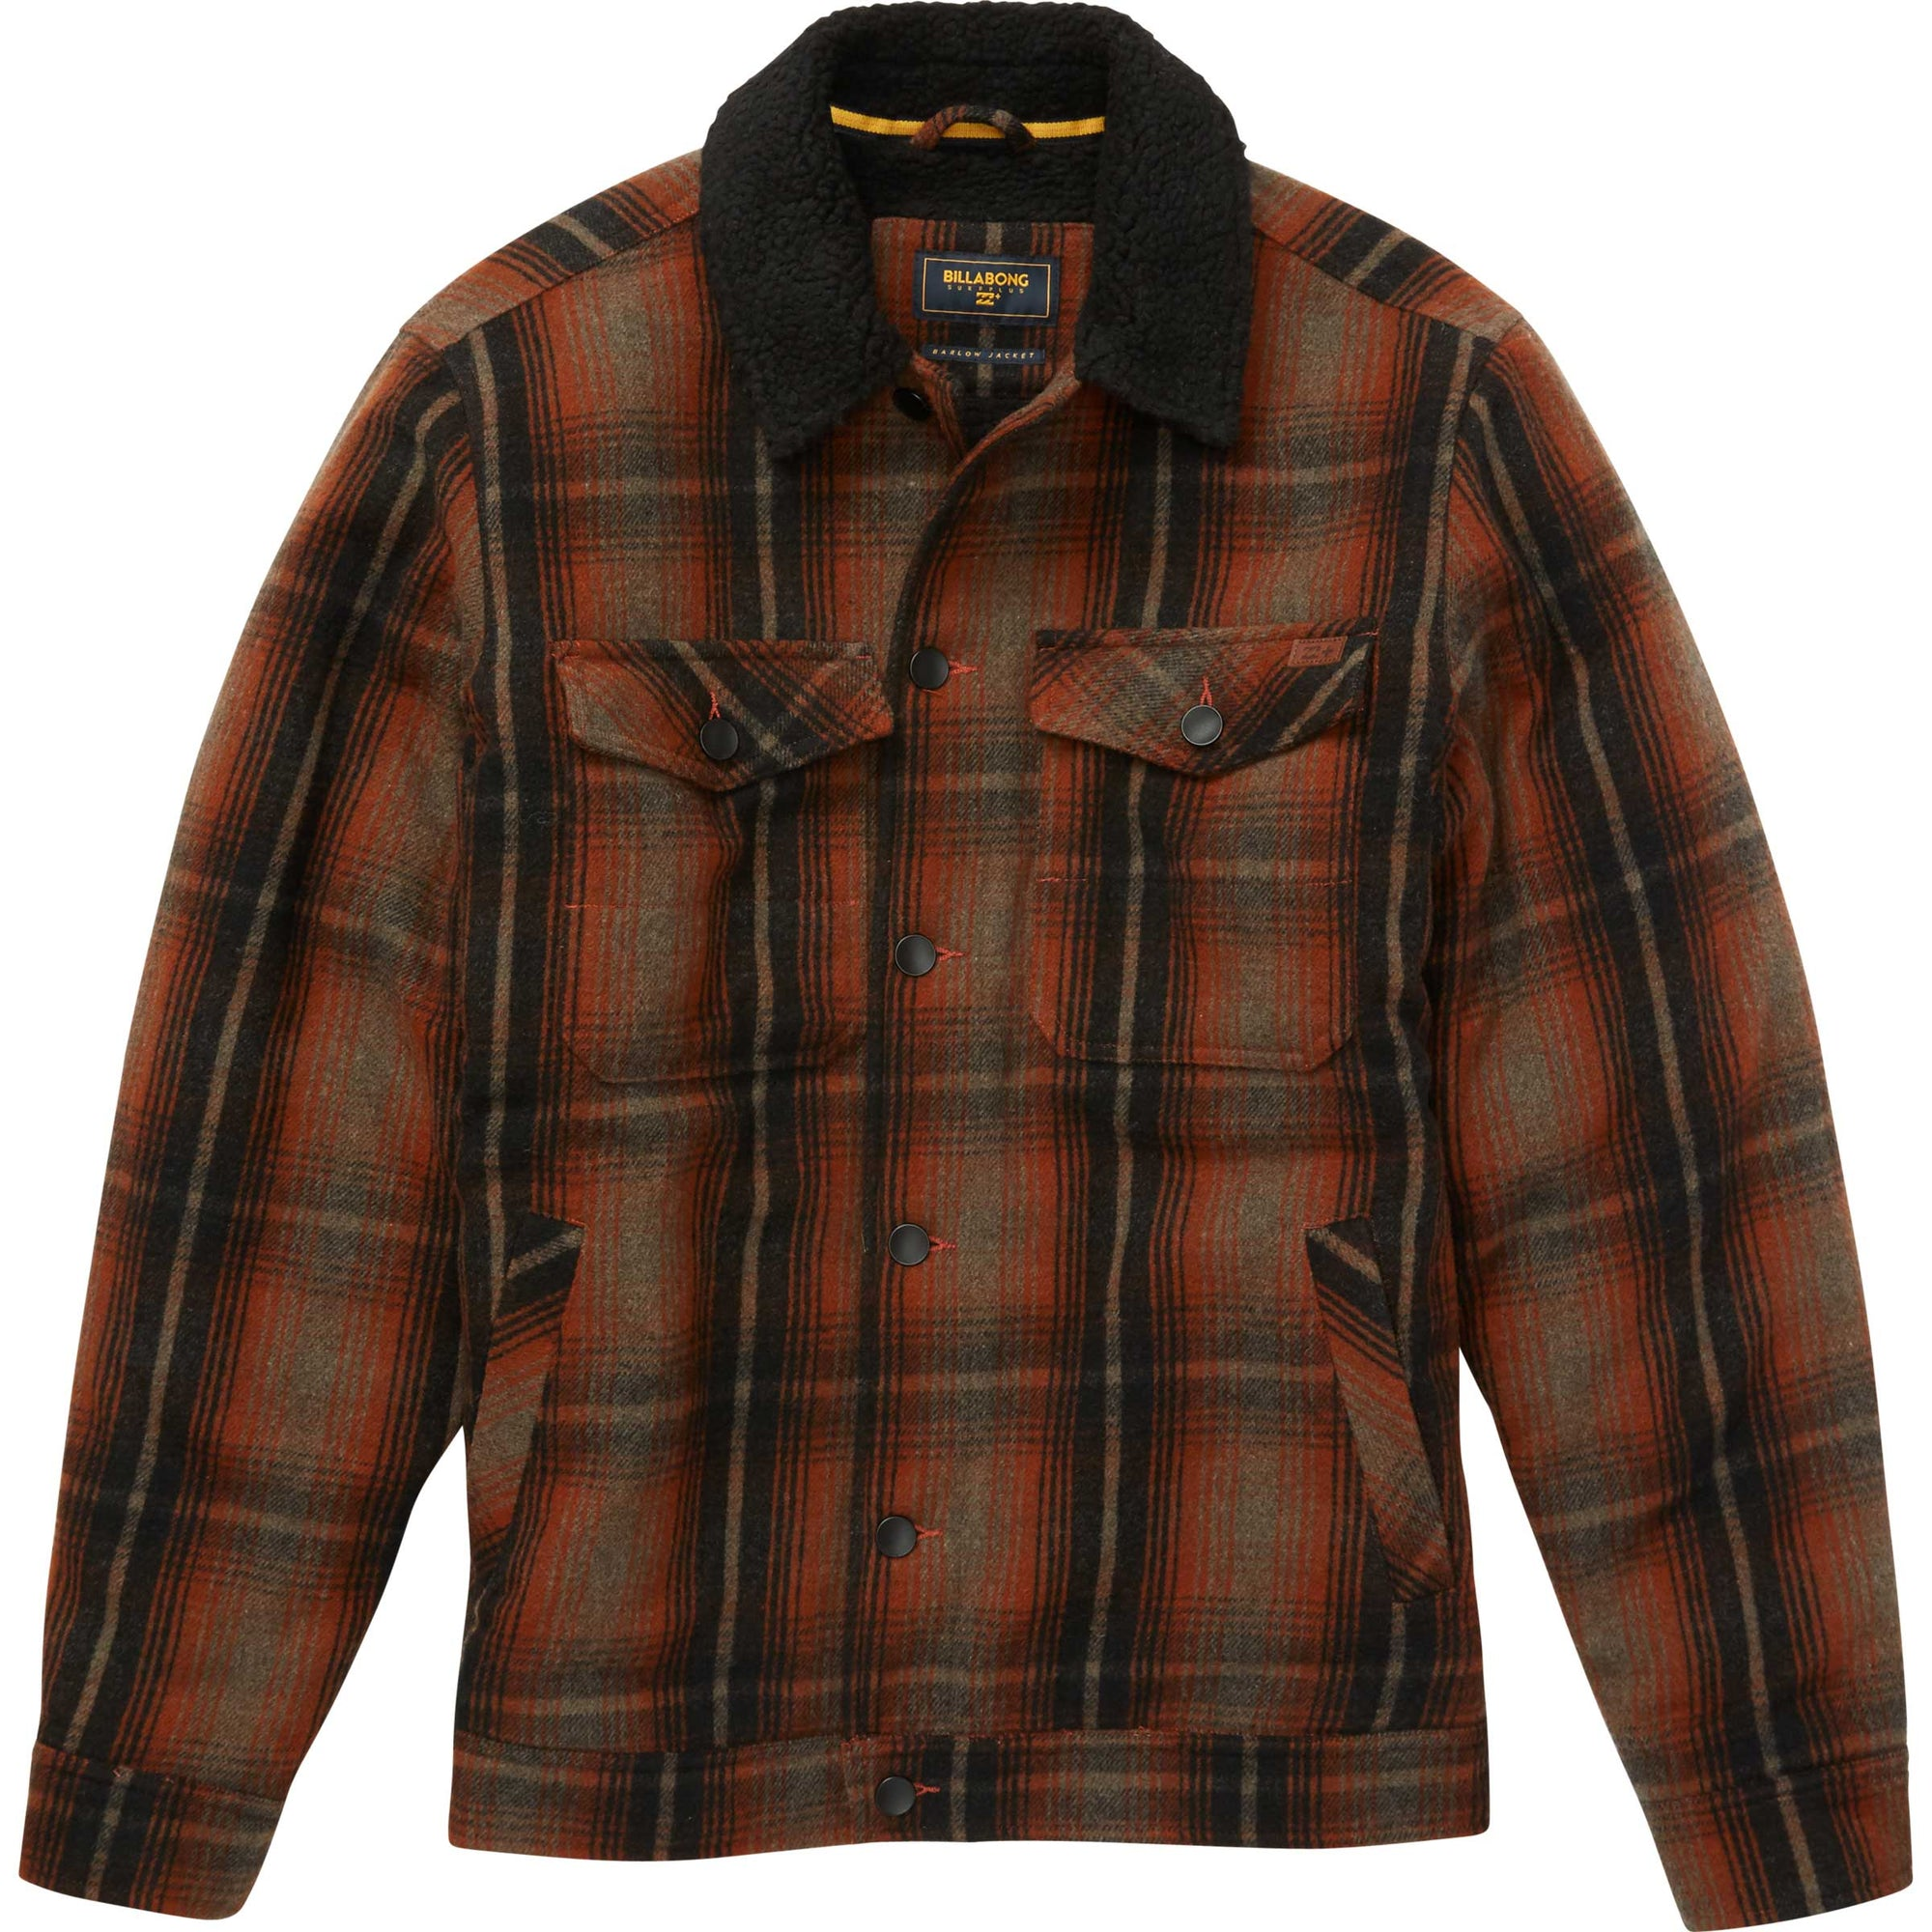 Barlow Trucker Wool Jacket By Billabong